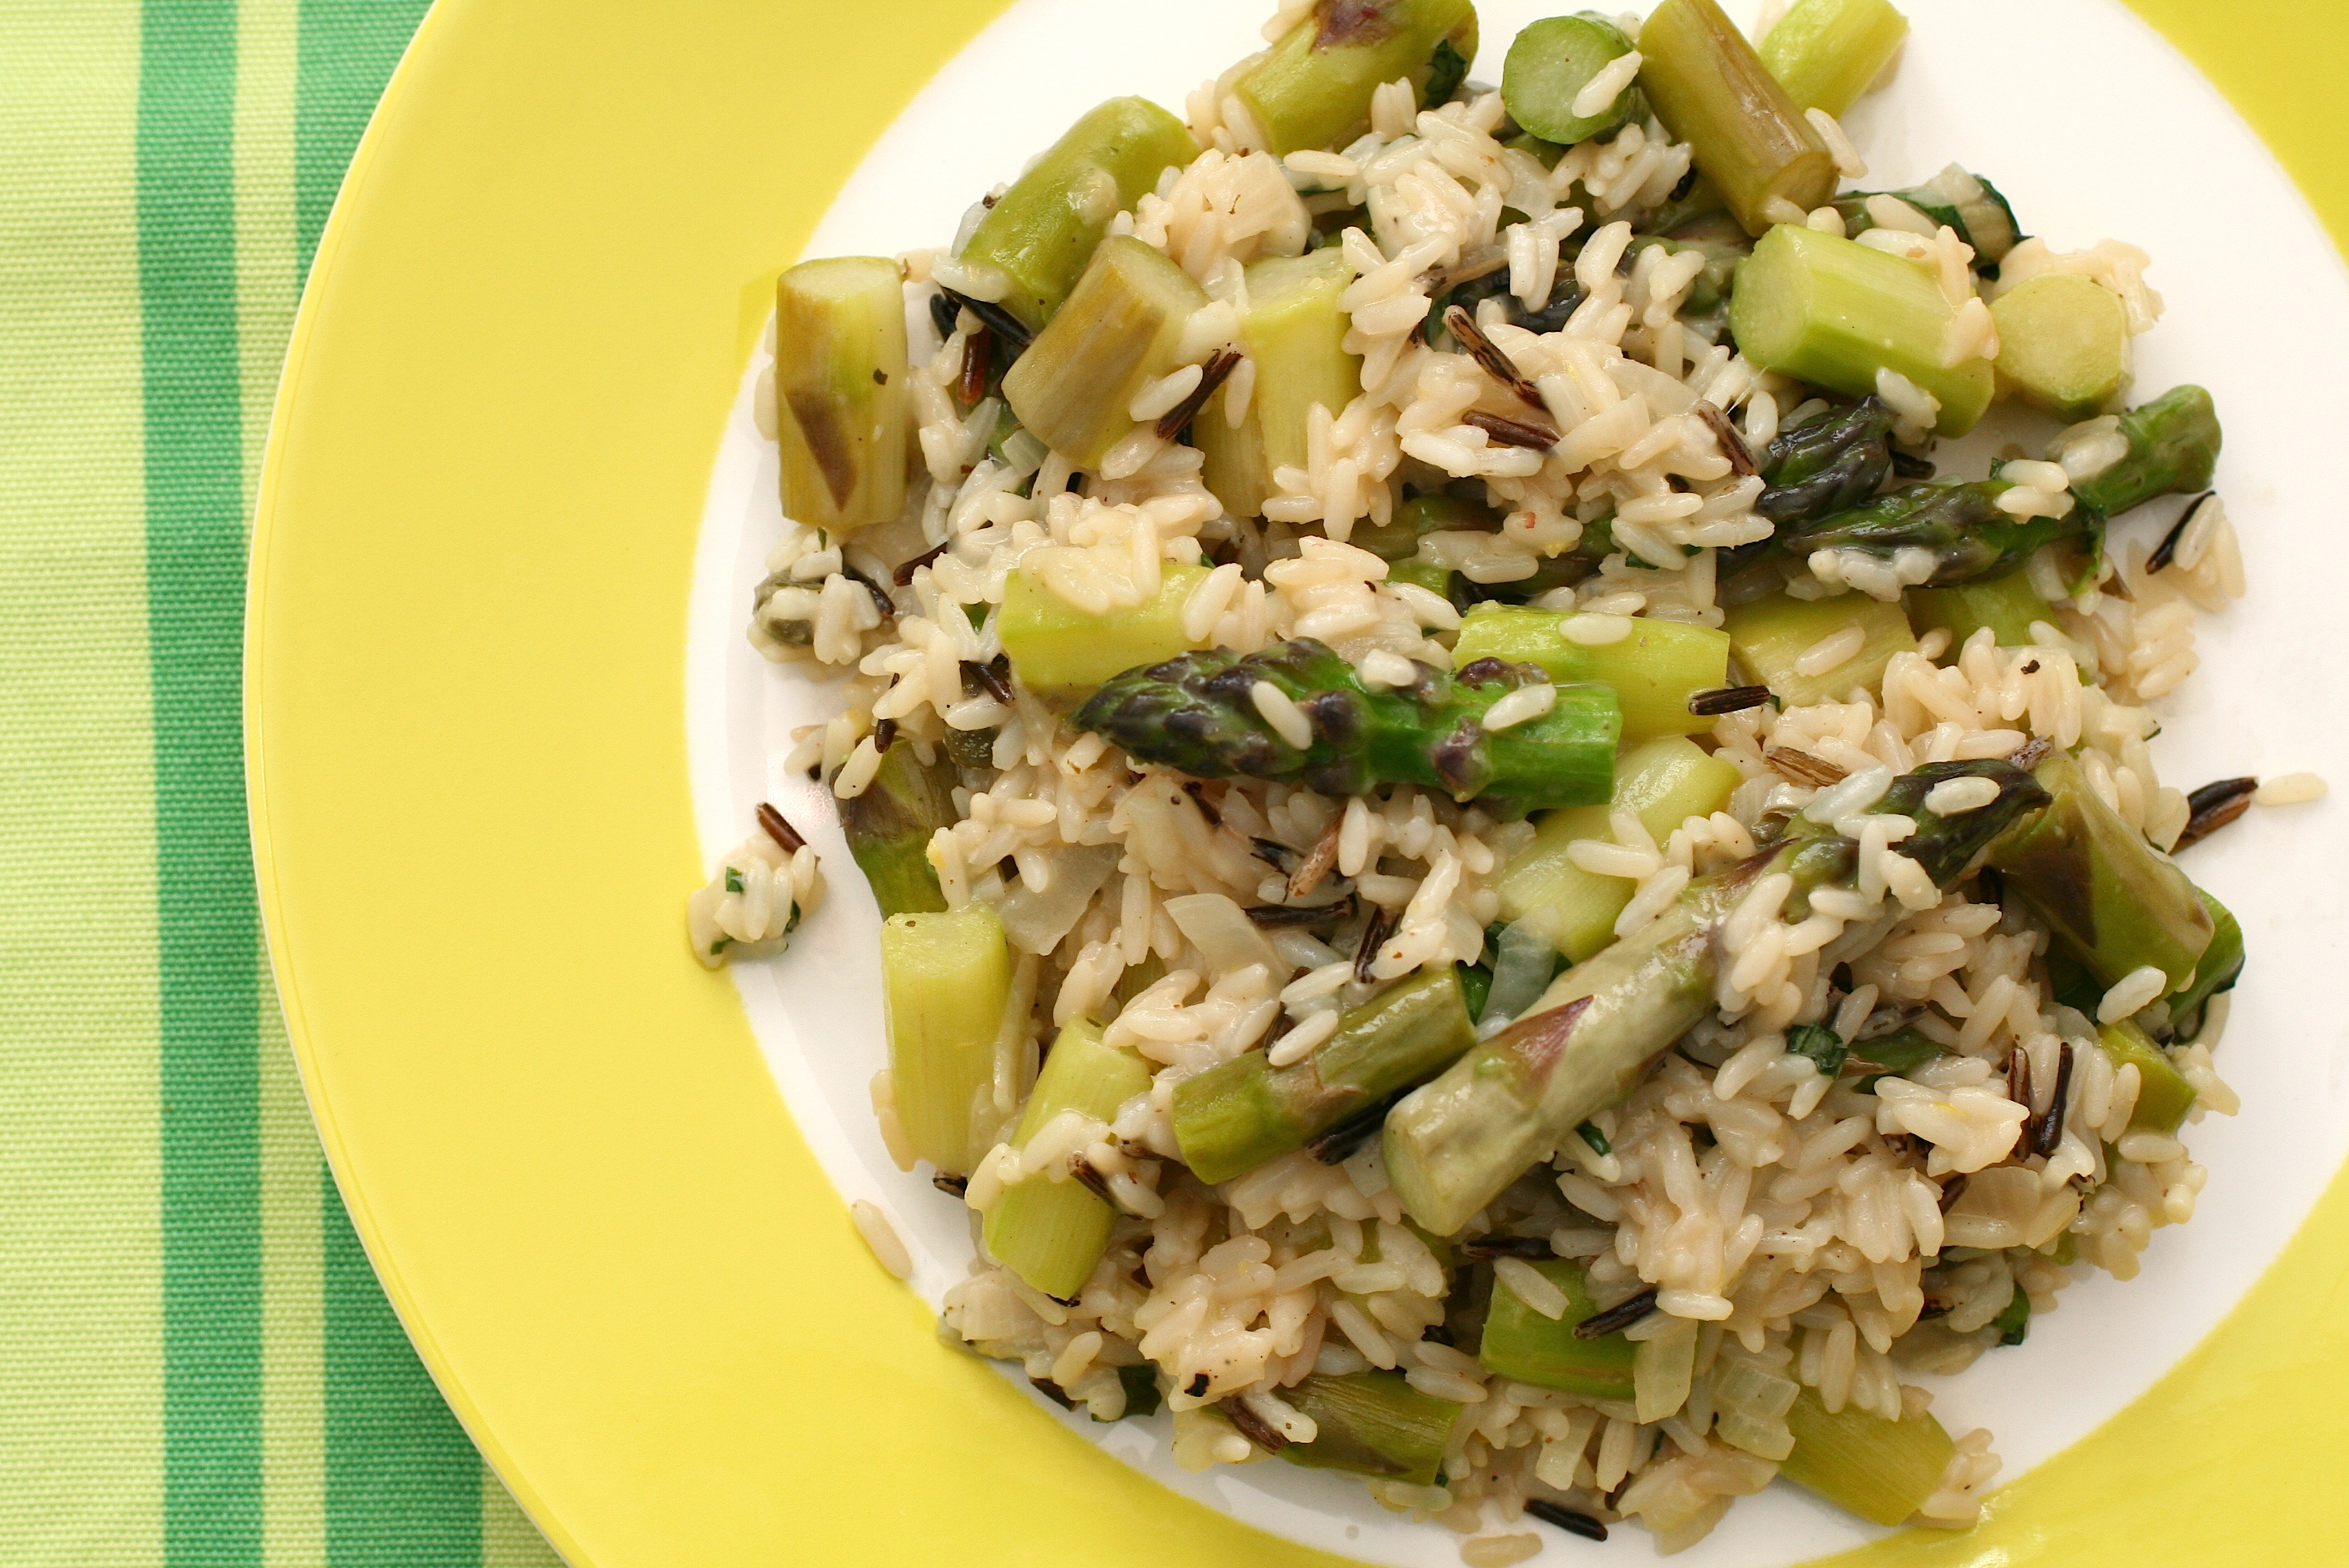 By Katrin Morenz (Flickr: Asparagus Risotto) [CC-BY-SA-2.0 (http://creativecommons.org/licenses/by-sa/2.0)], via Wikimedia Commons